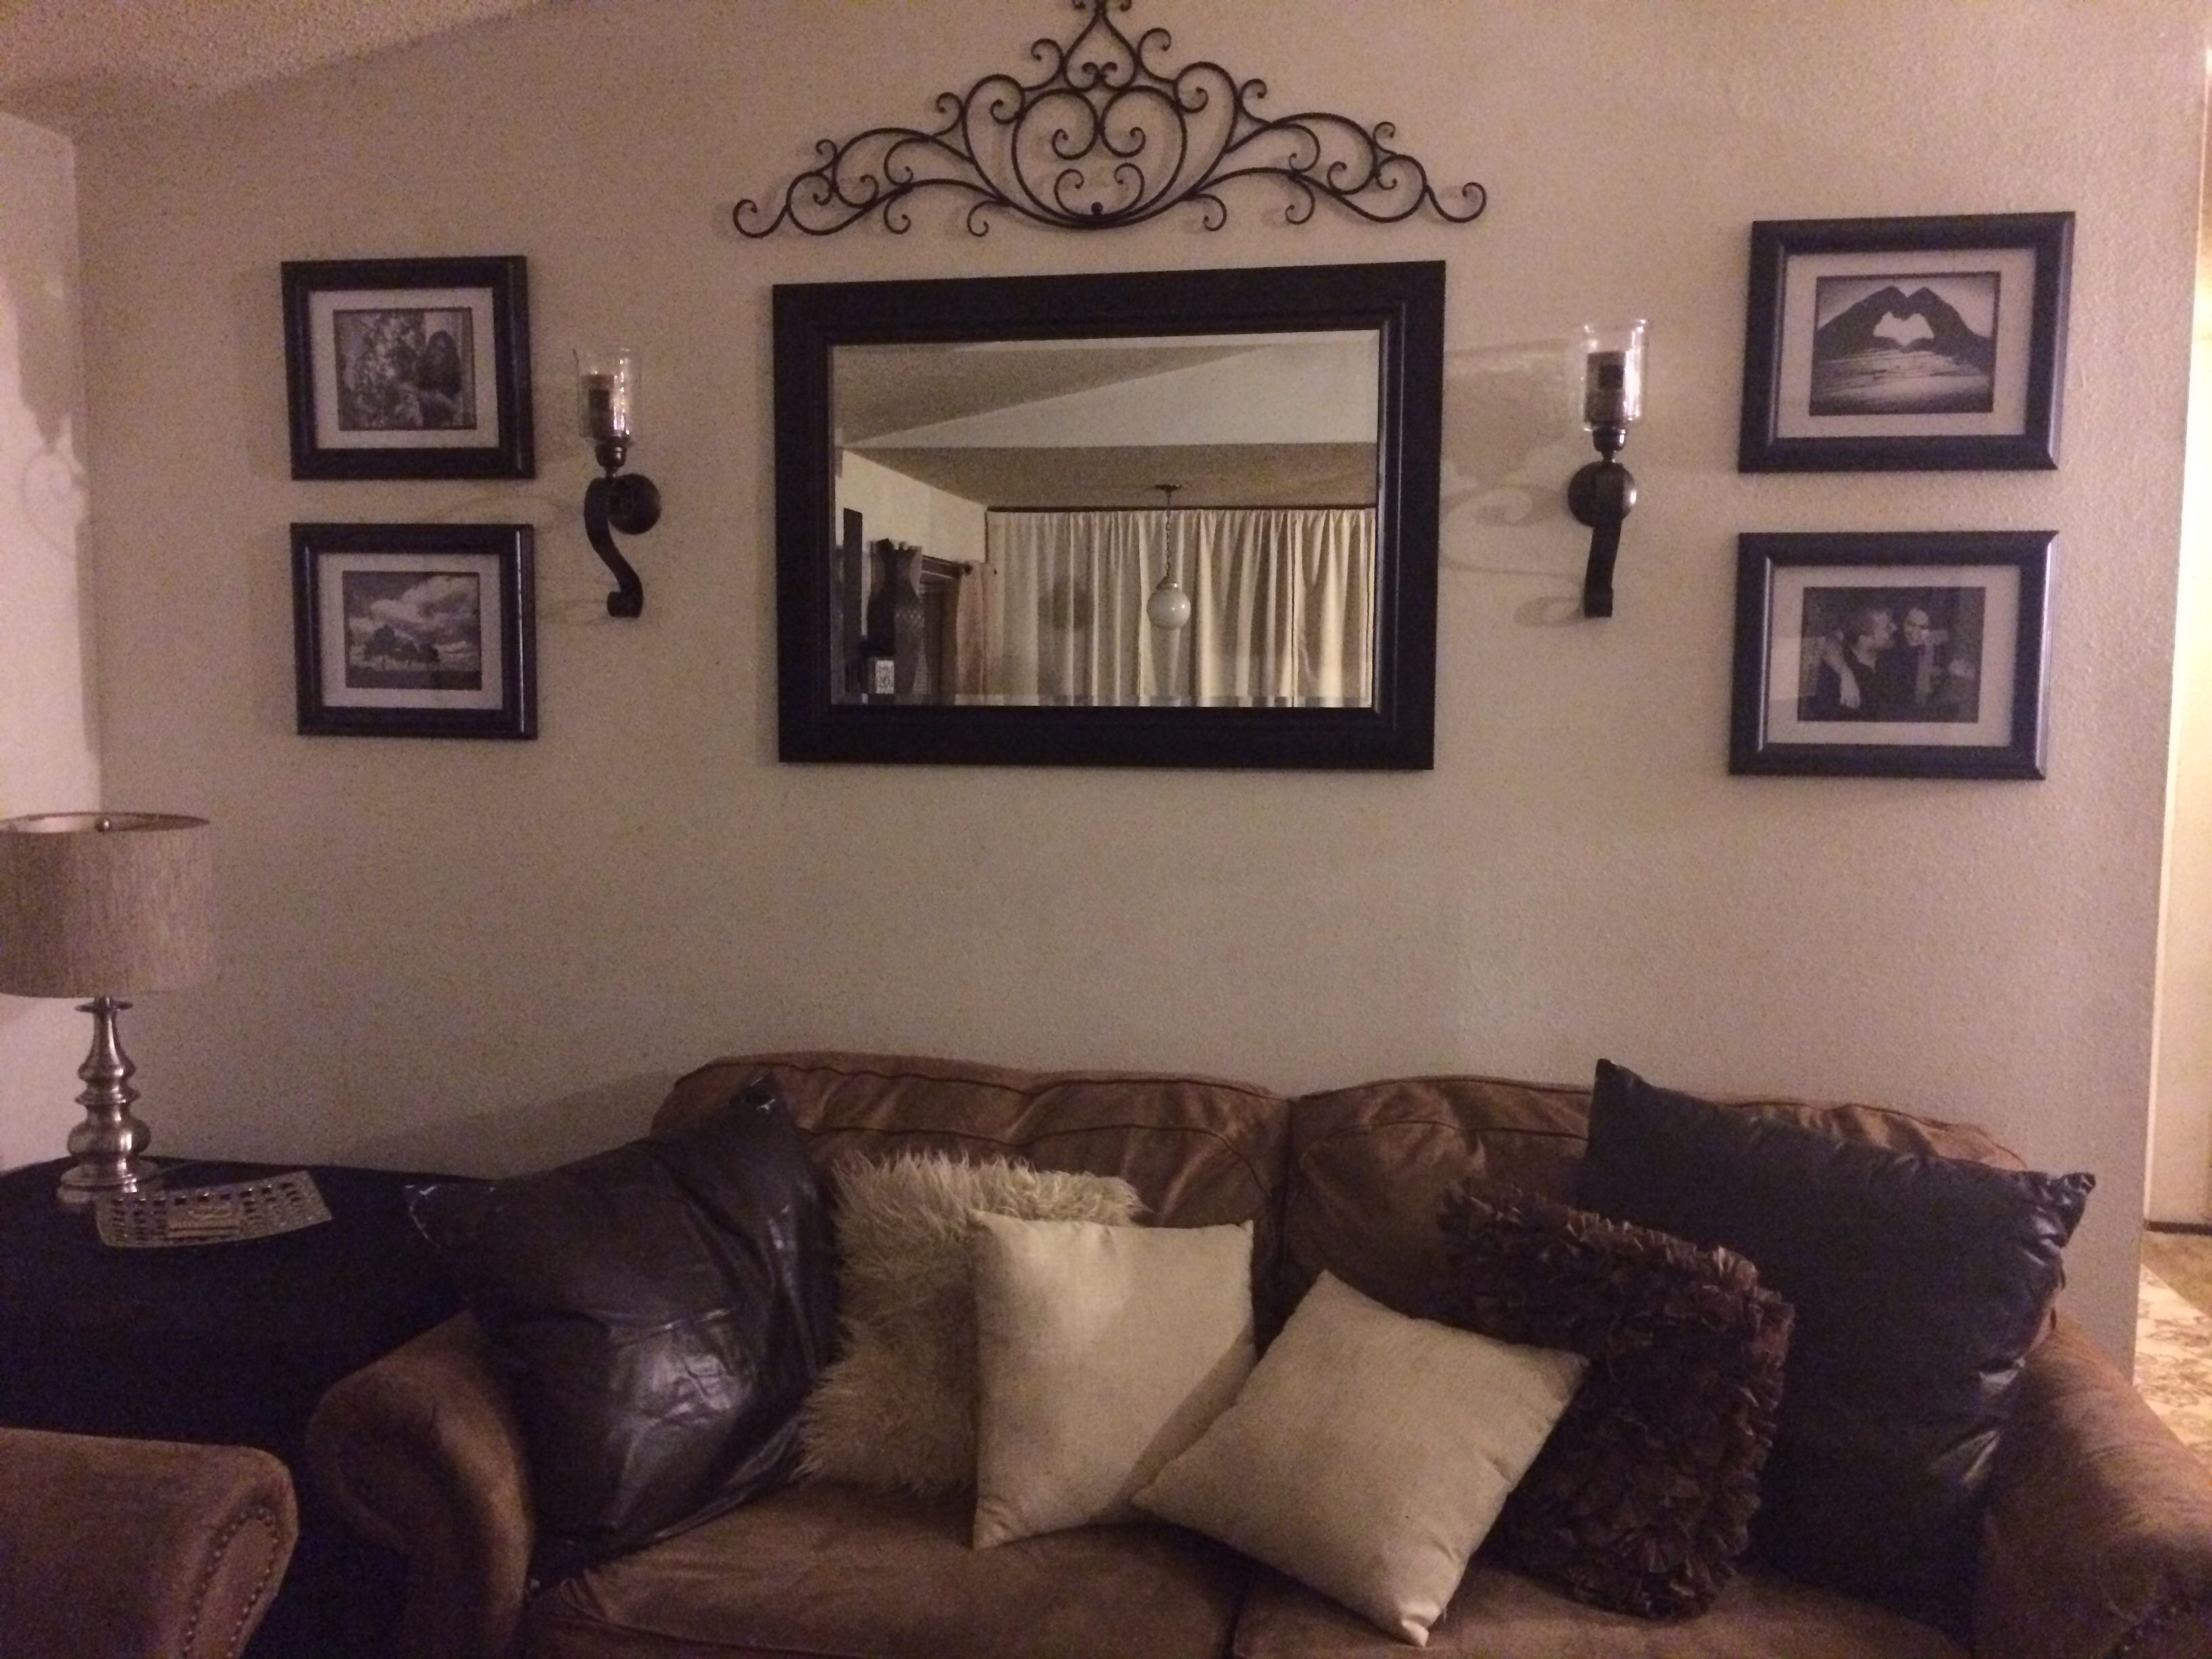 Living Room Wall Mirrors behind couch wall in living room mirror, frame, sconces, and metal